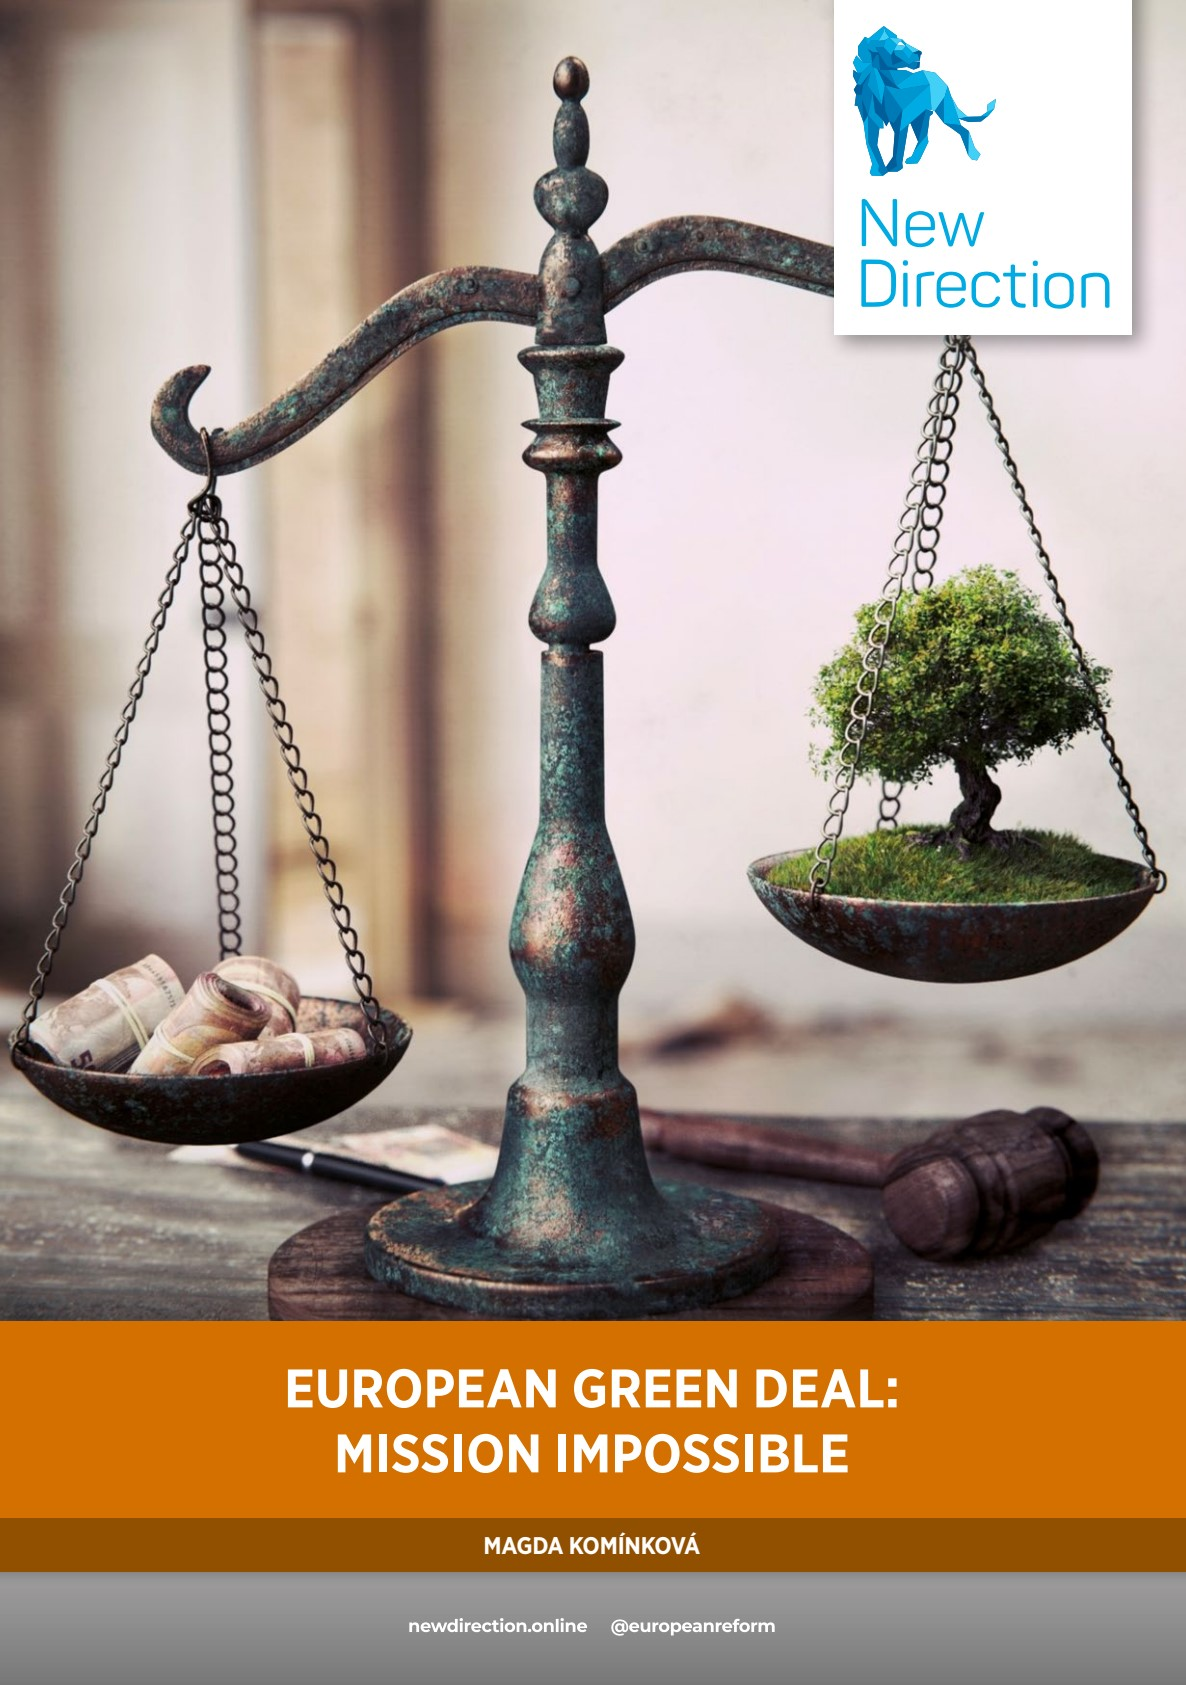 European Green Deal: Mission Impossible